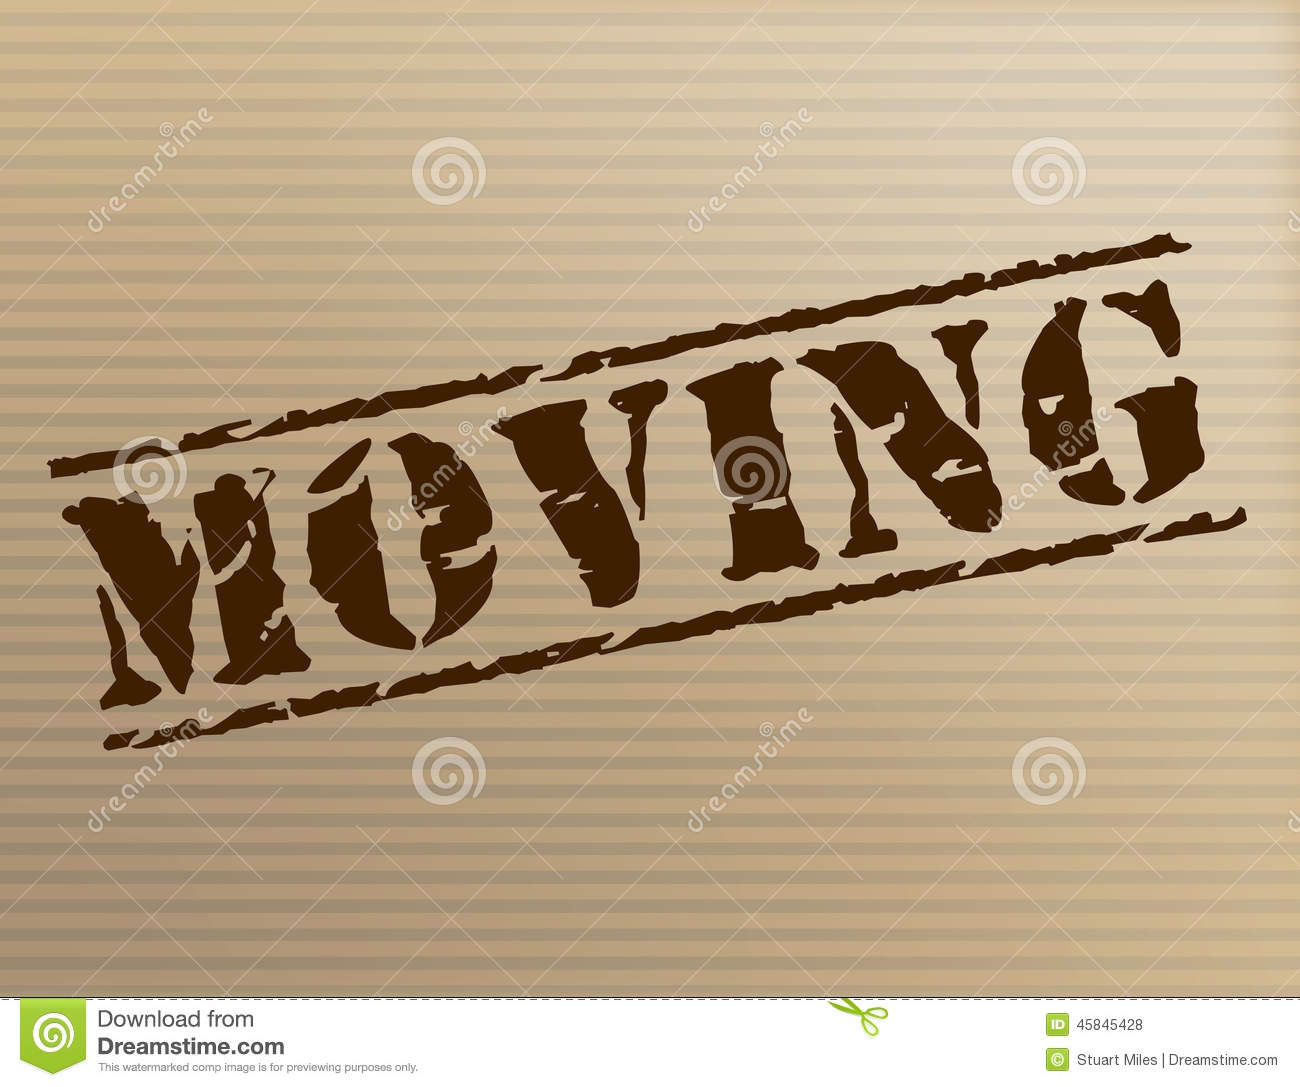 Apartment Meaning: Moving House Shows Change Of Residence And Apartment Stock